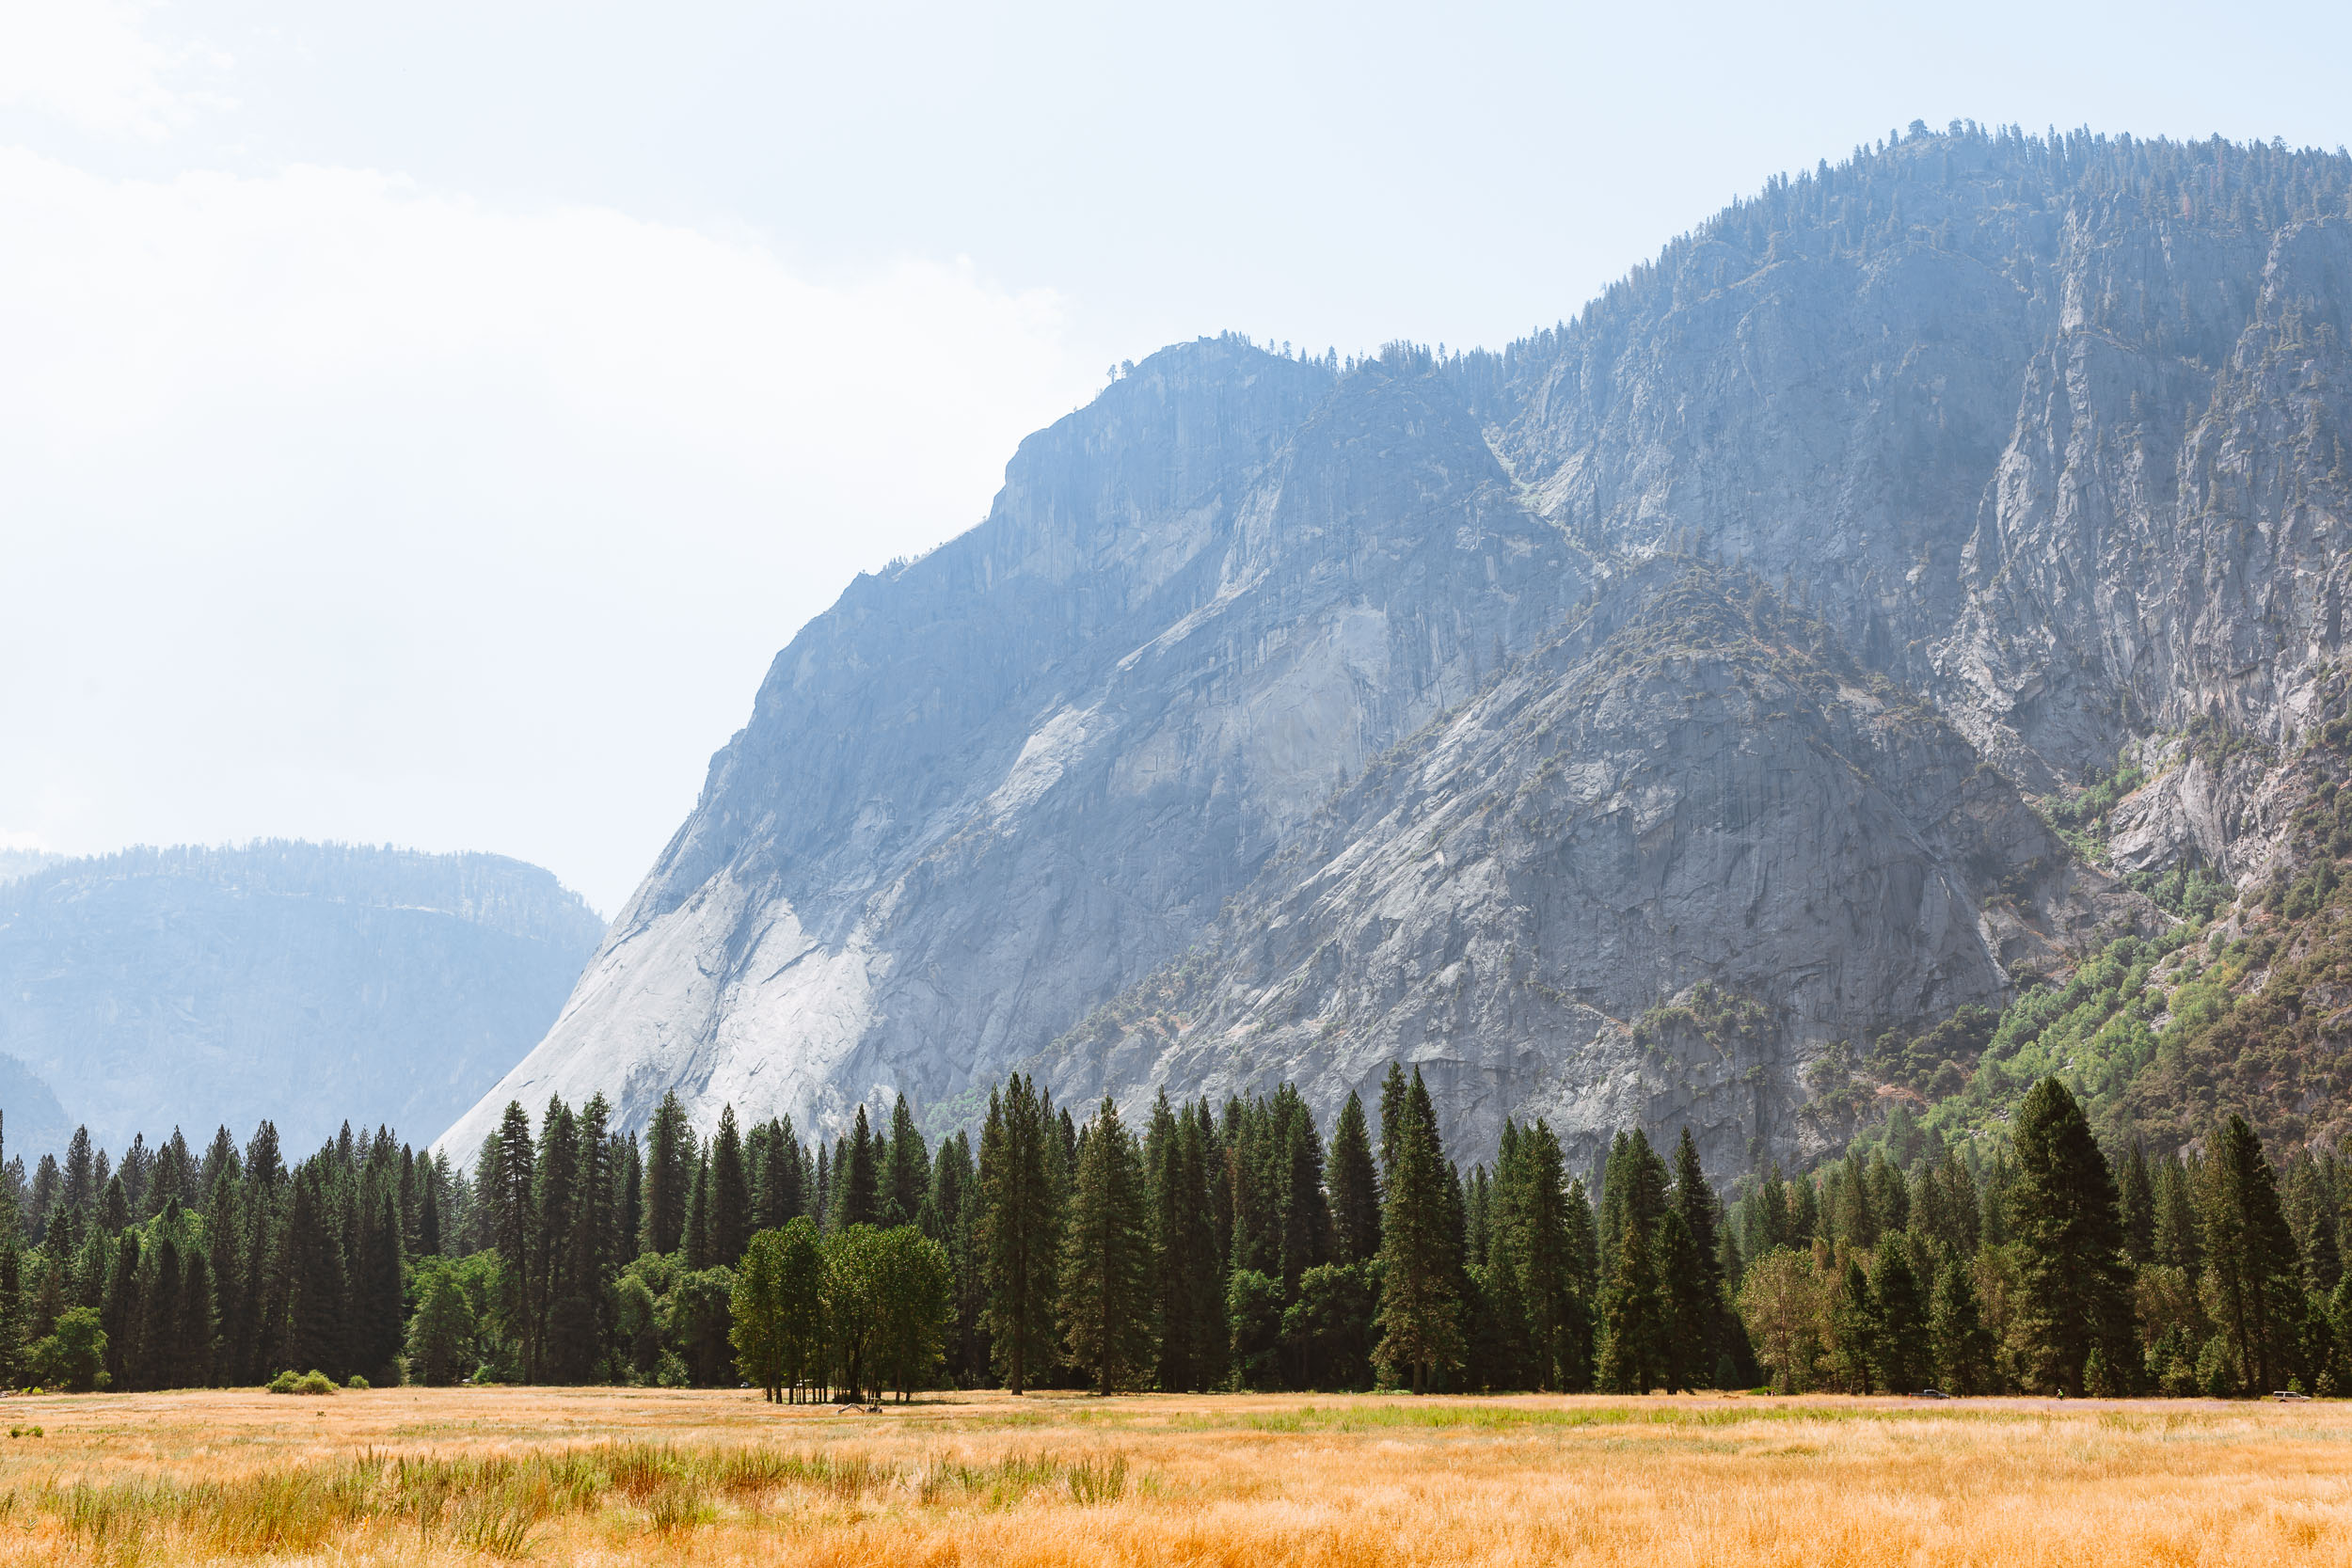 20160820_20160821_YOSEMITE_NATIONAL_PARK-2.jpg